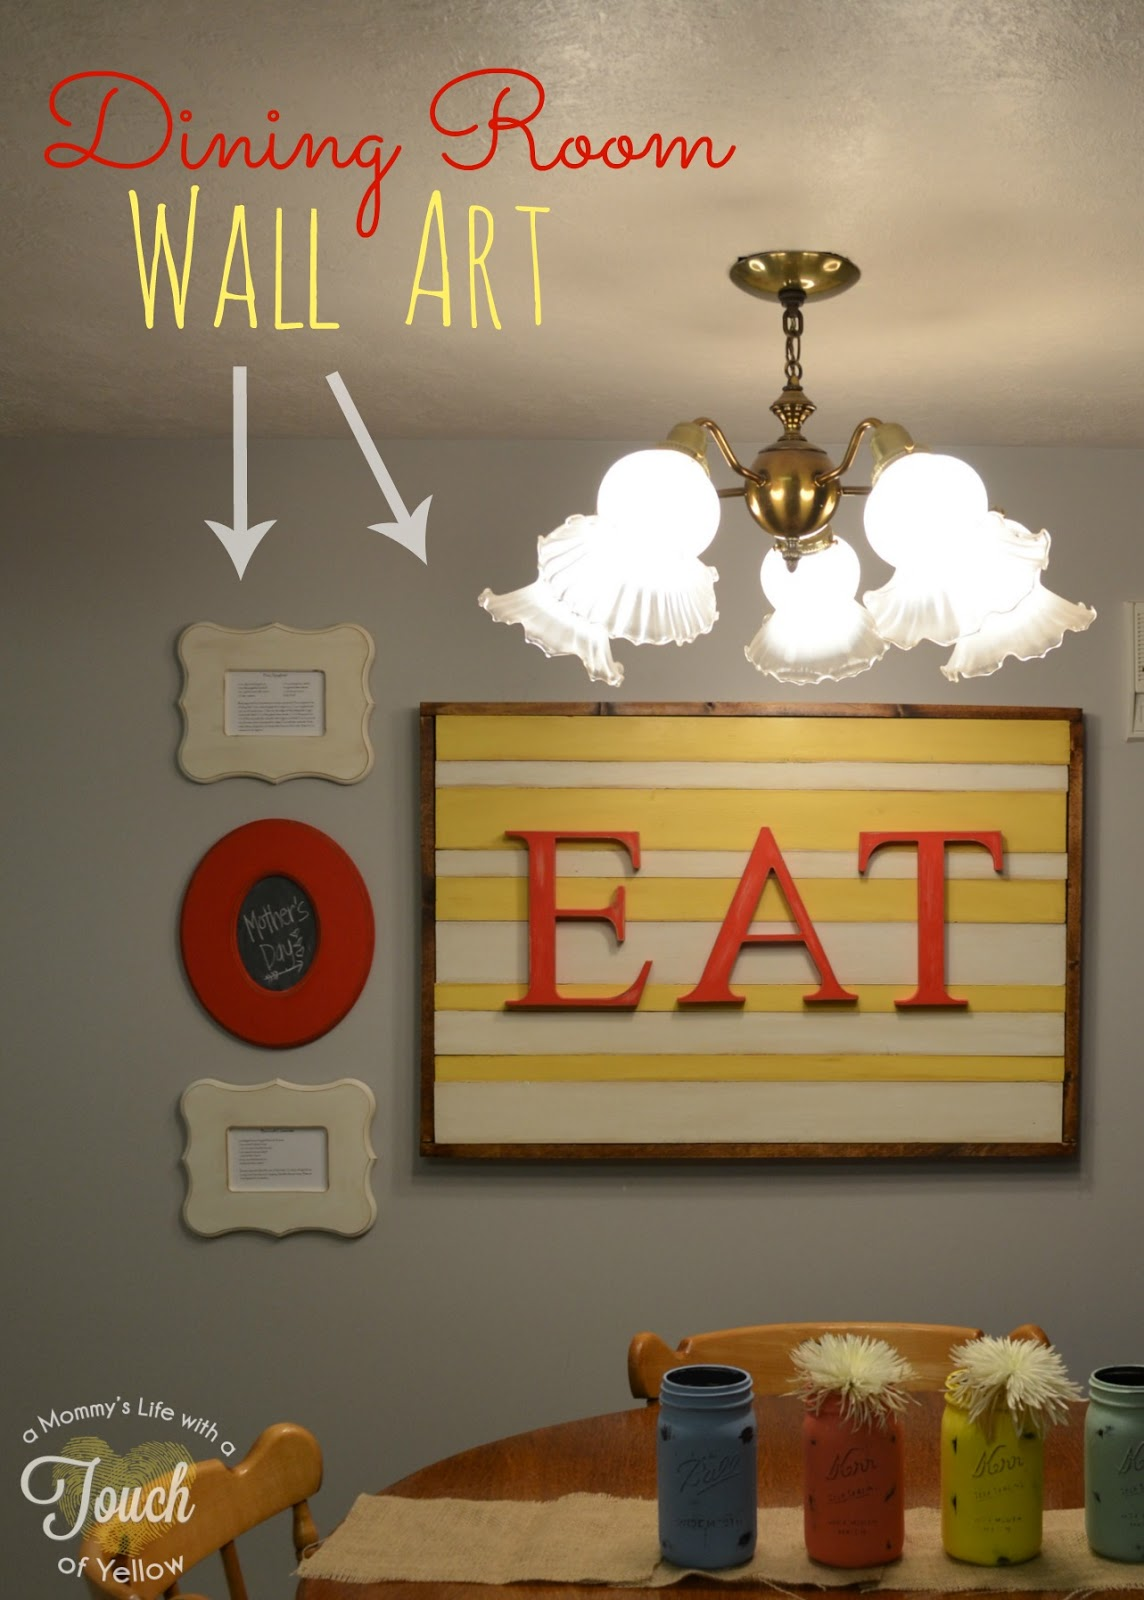 Poppy seed projects guest post diy dining room wall art for Dining room wall art images